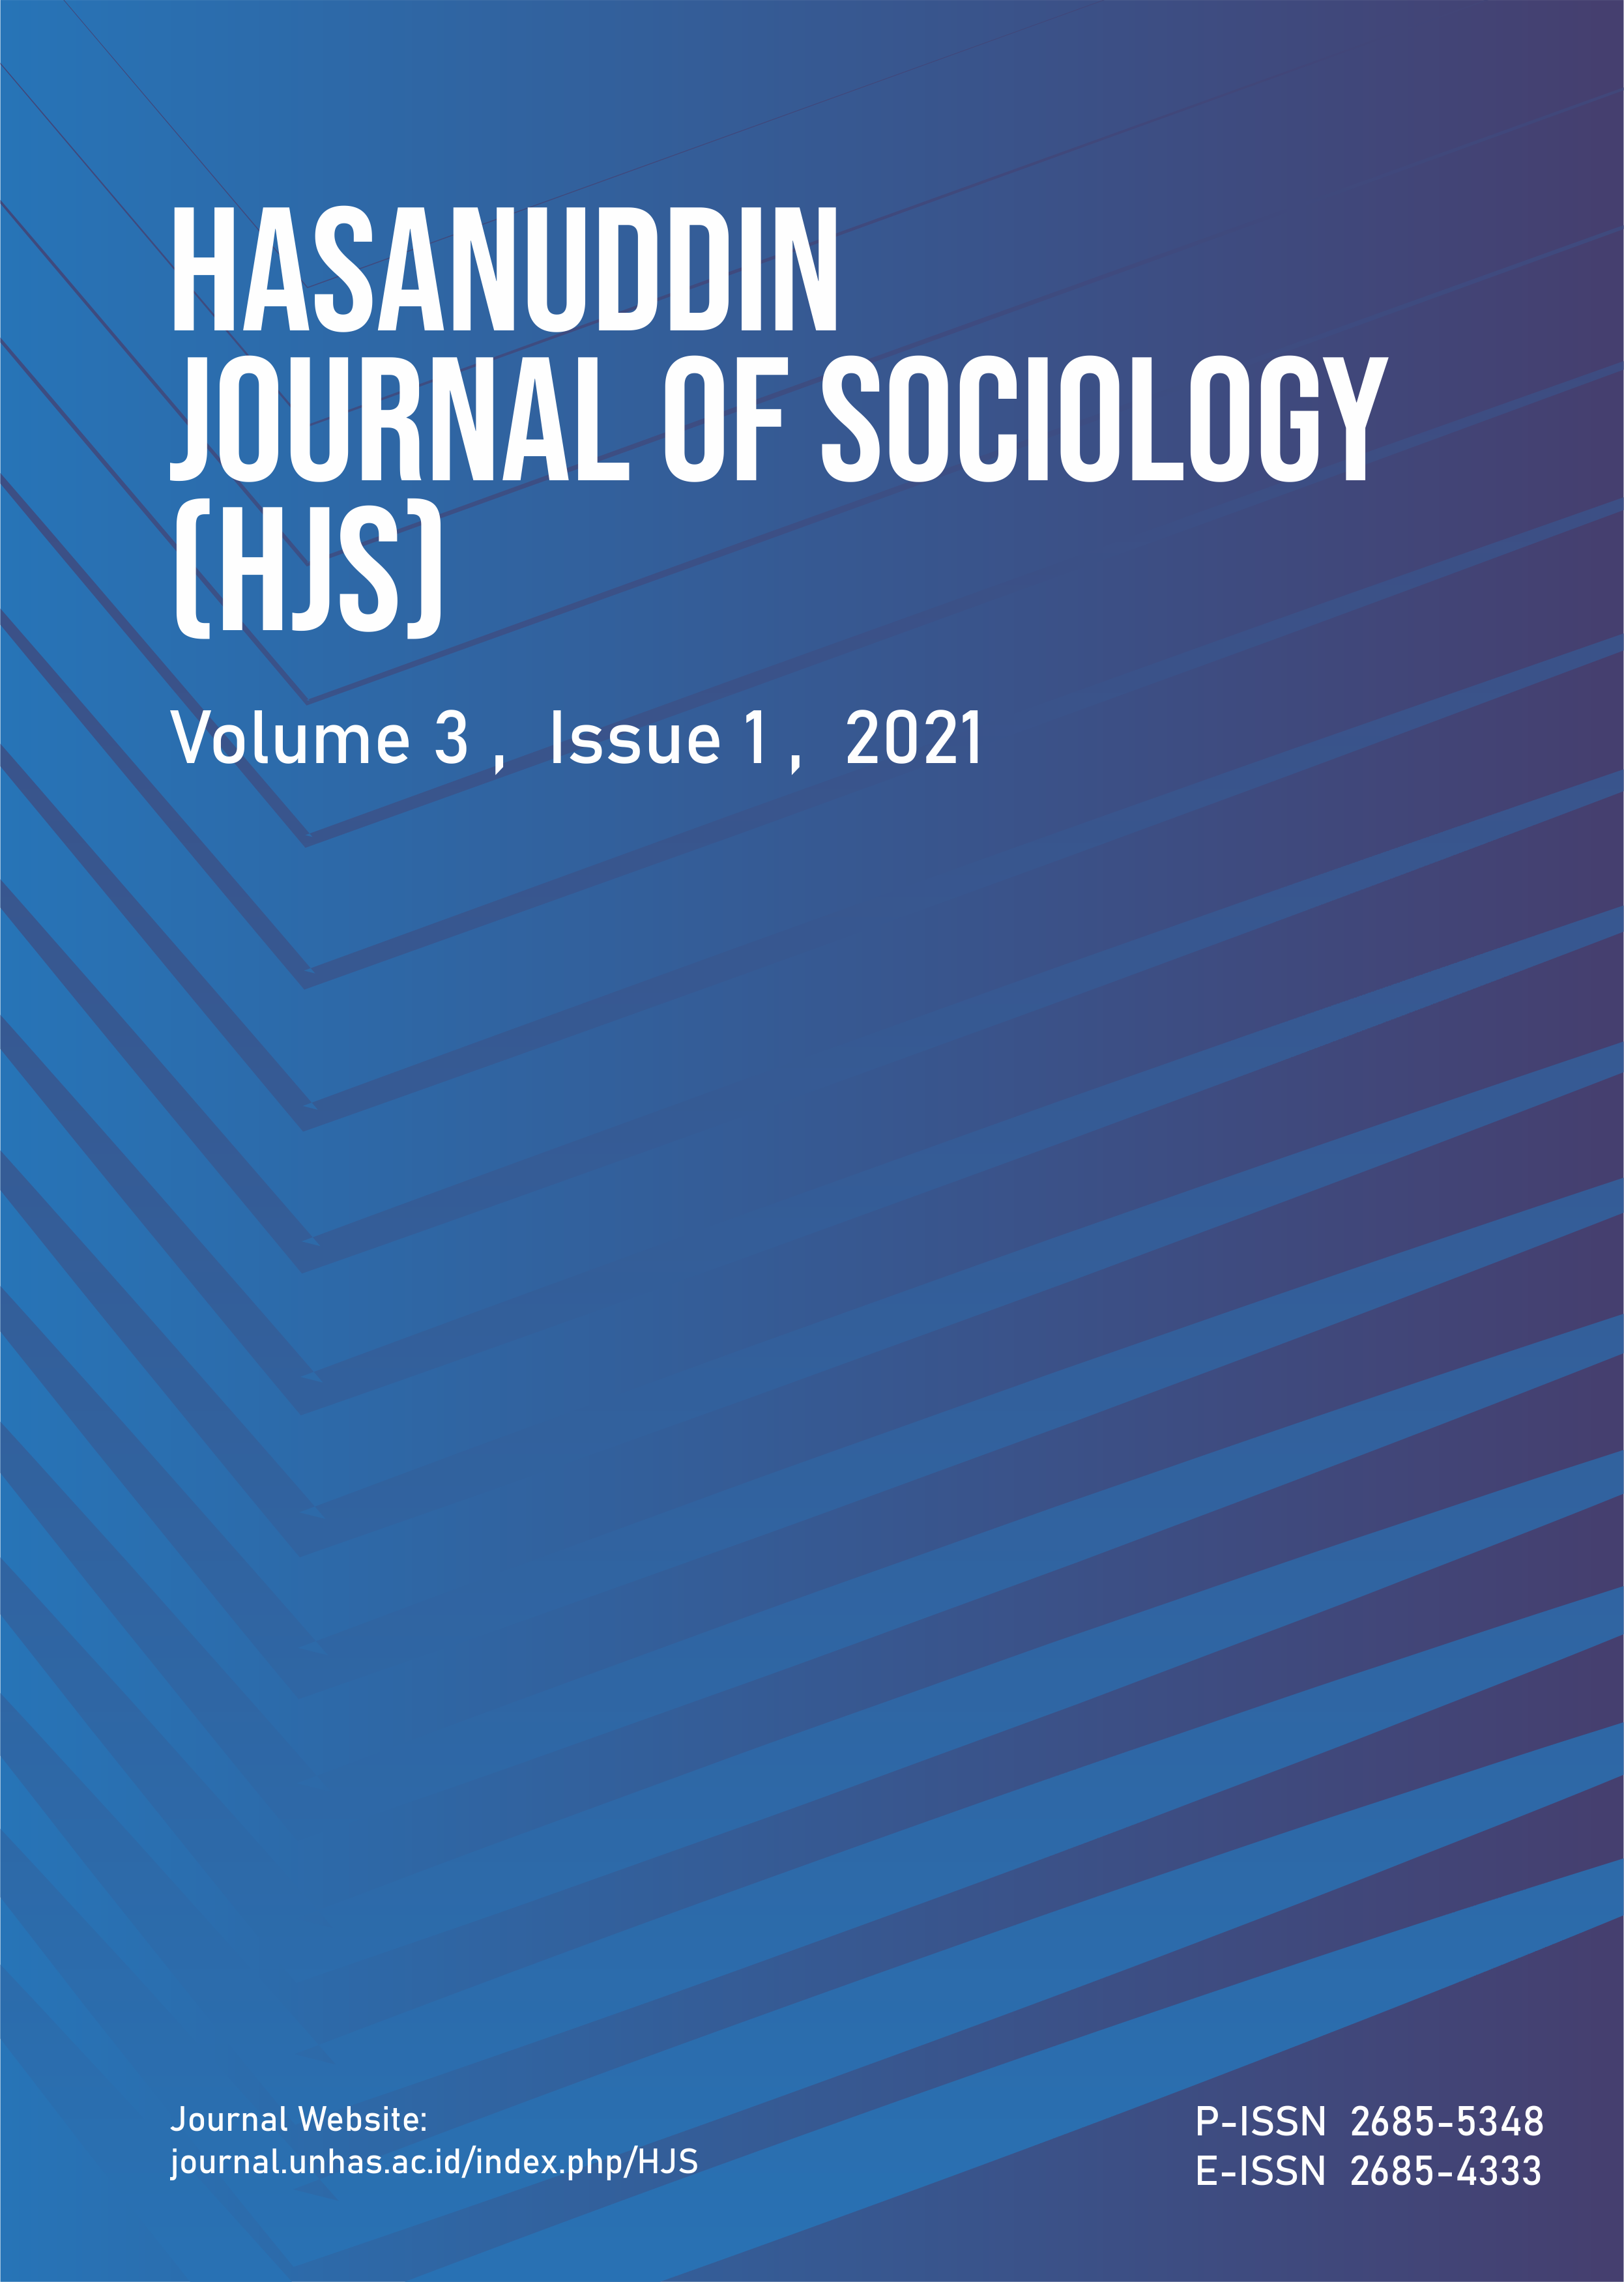 View VOLUME 3, ISSUE 1, 2021